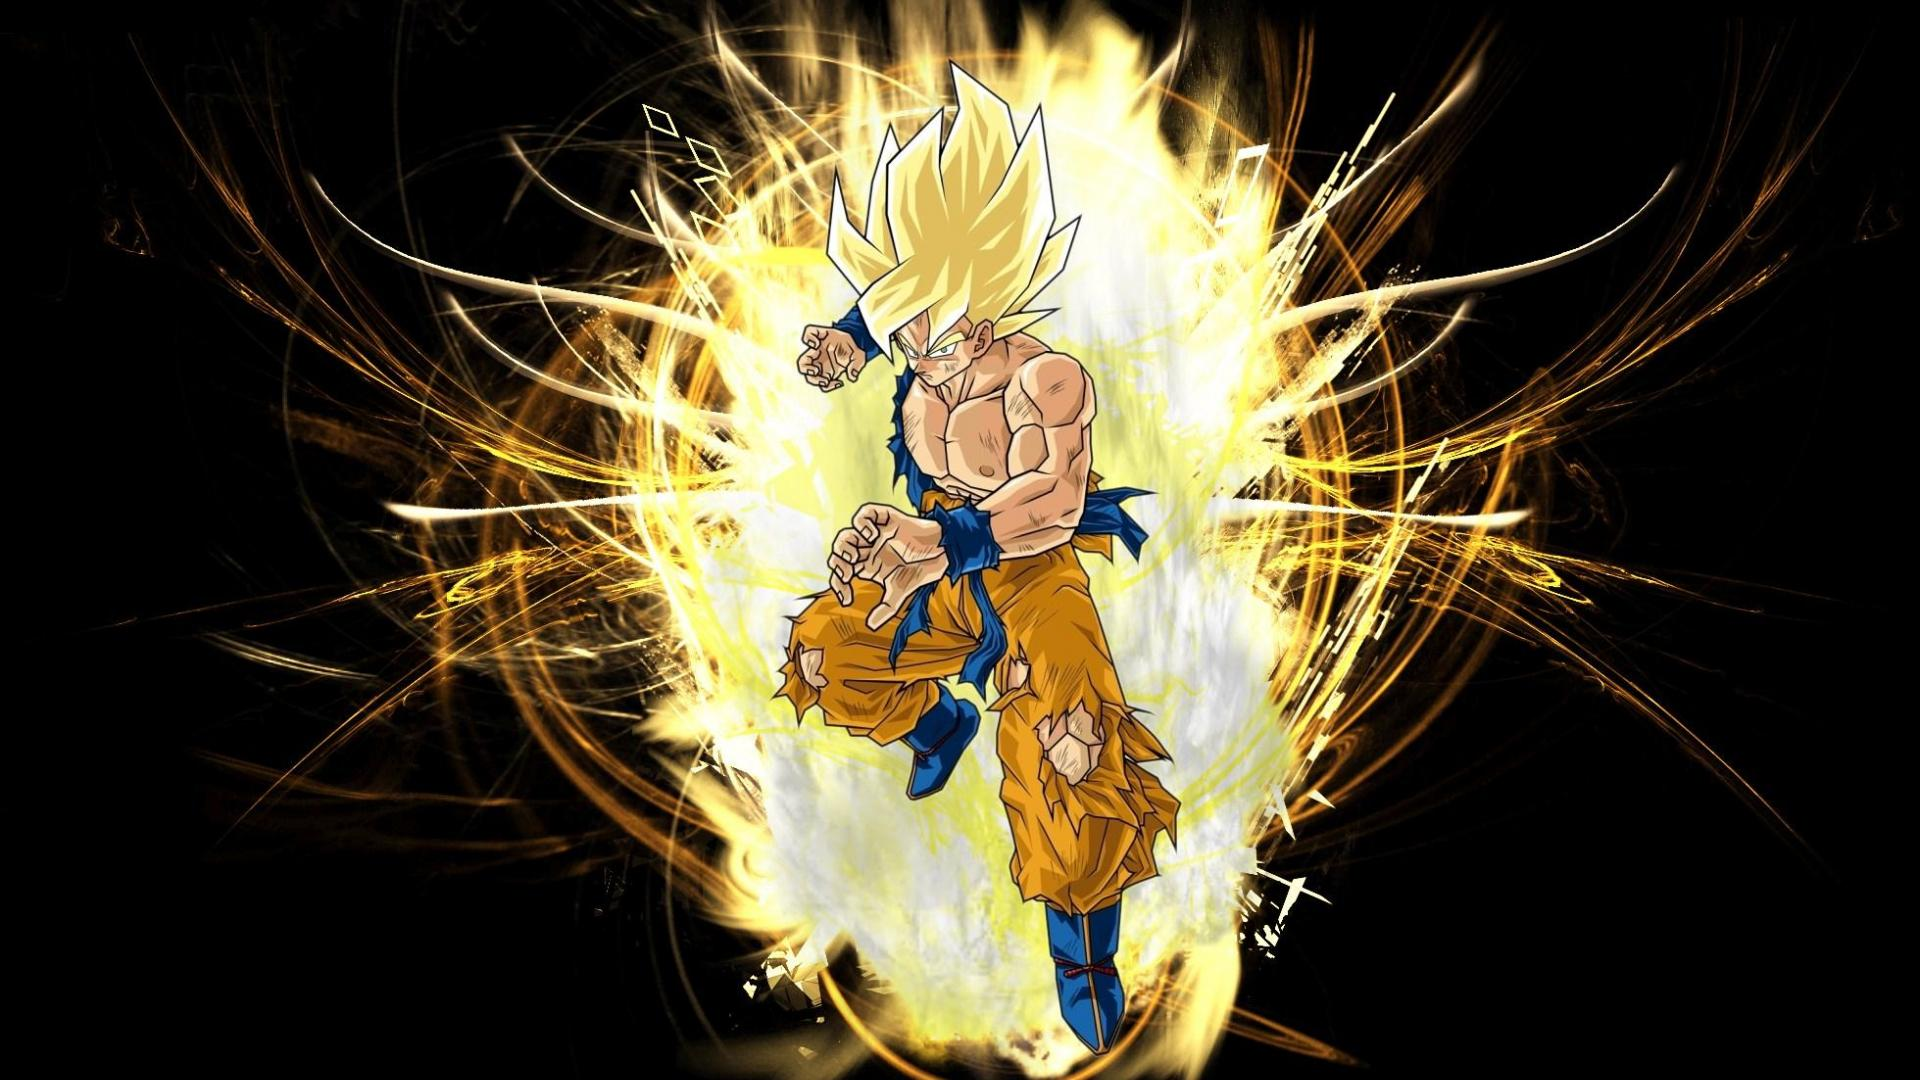 Dragon Ball Z Goku Super Hd Wallpaper